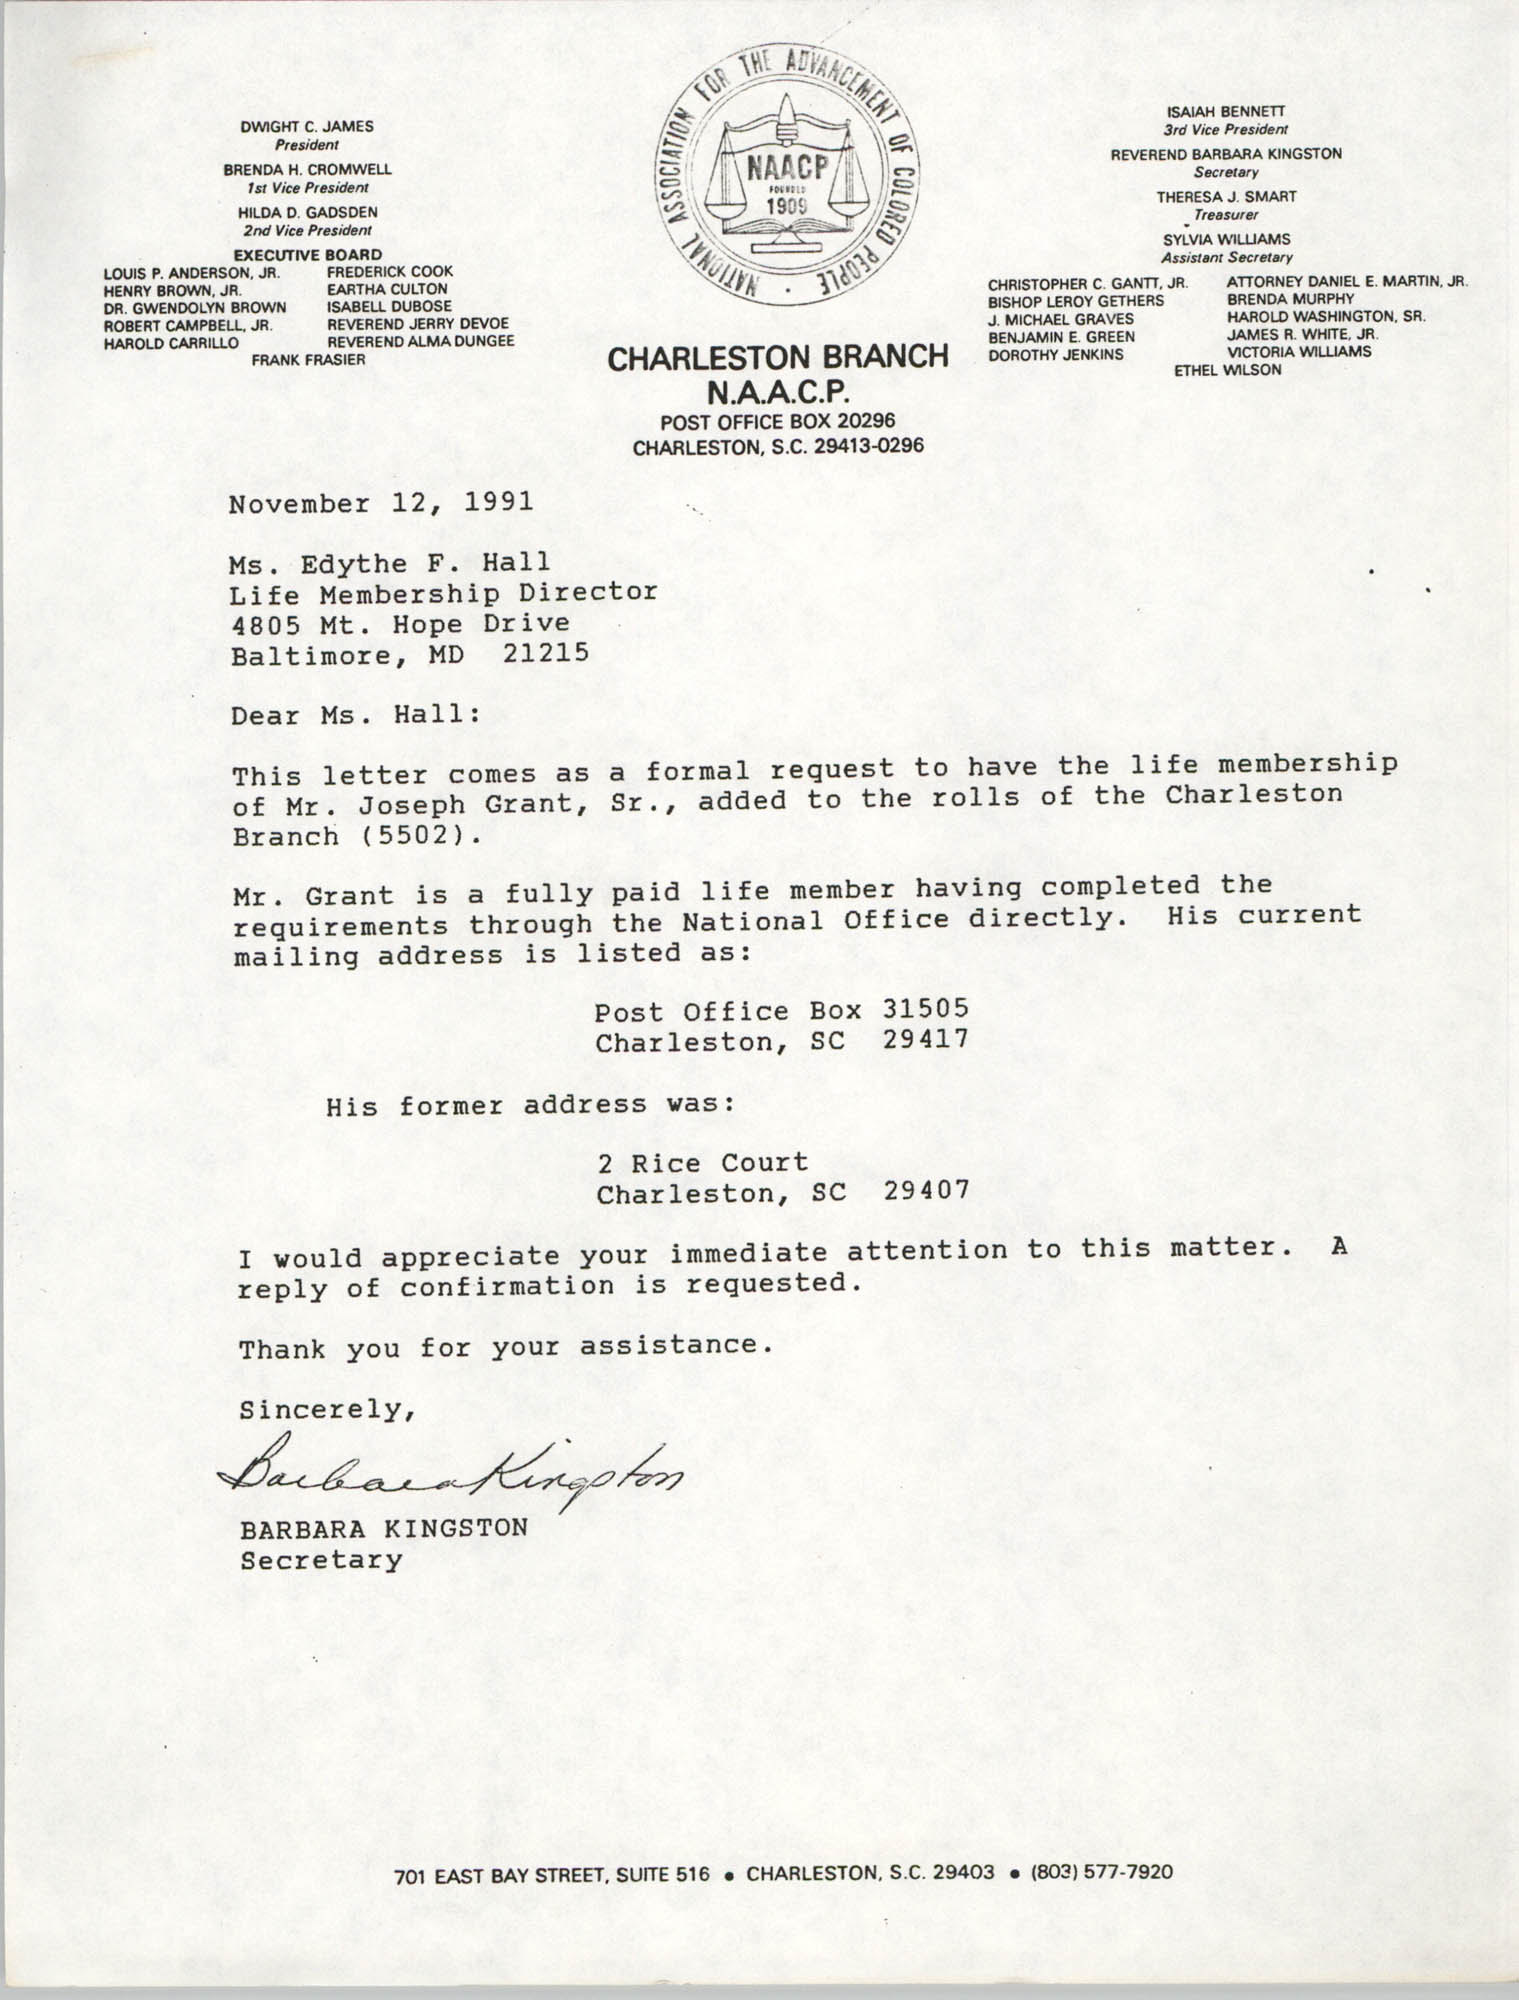 Letter from Barbara Kingston to Edythe F. Hall, November 12, 1991